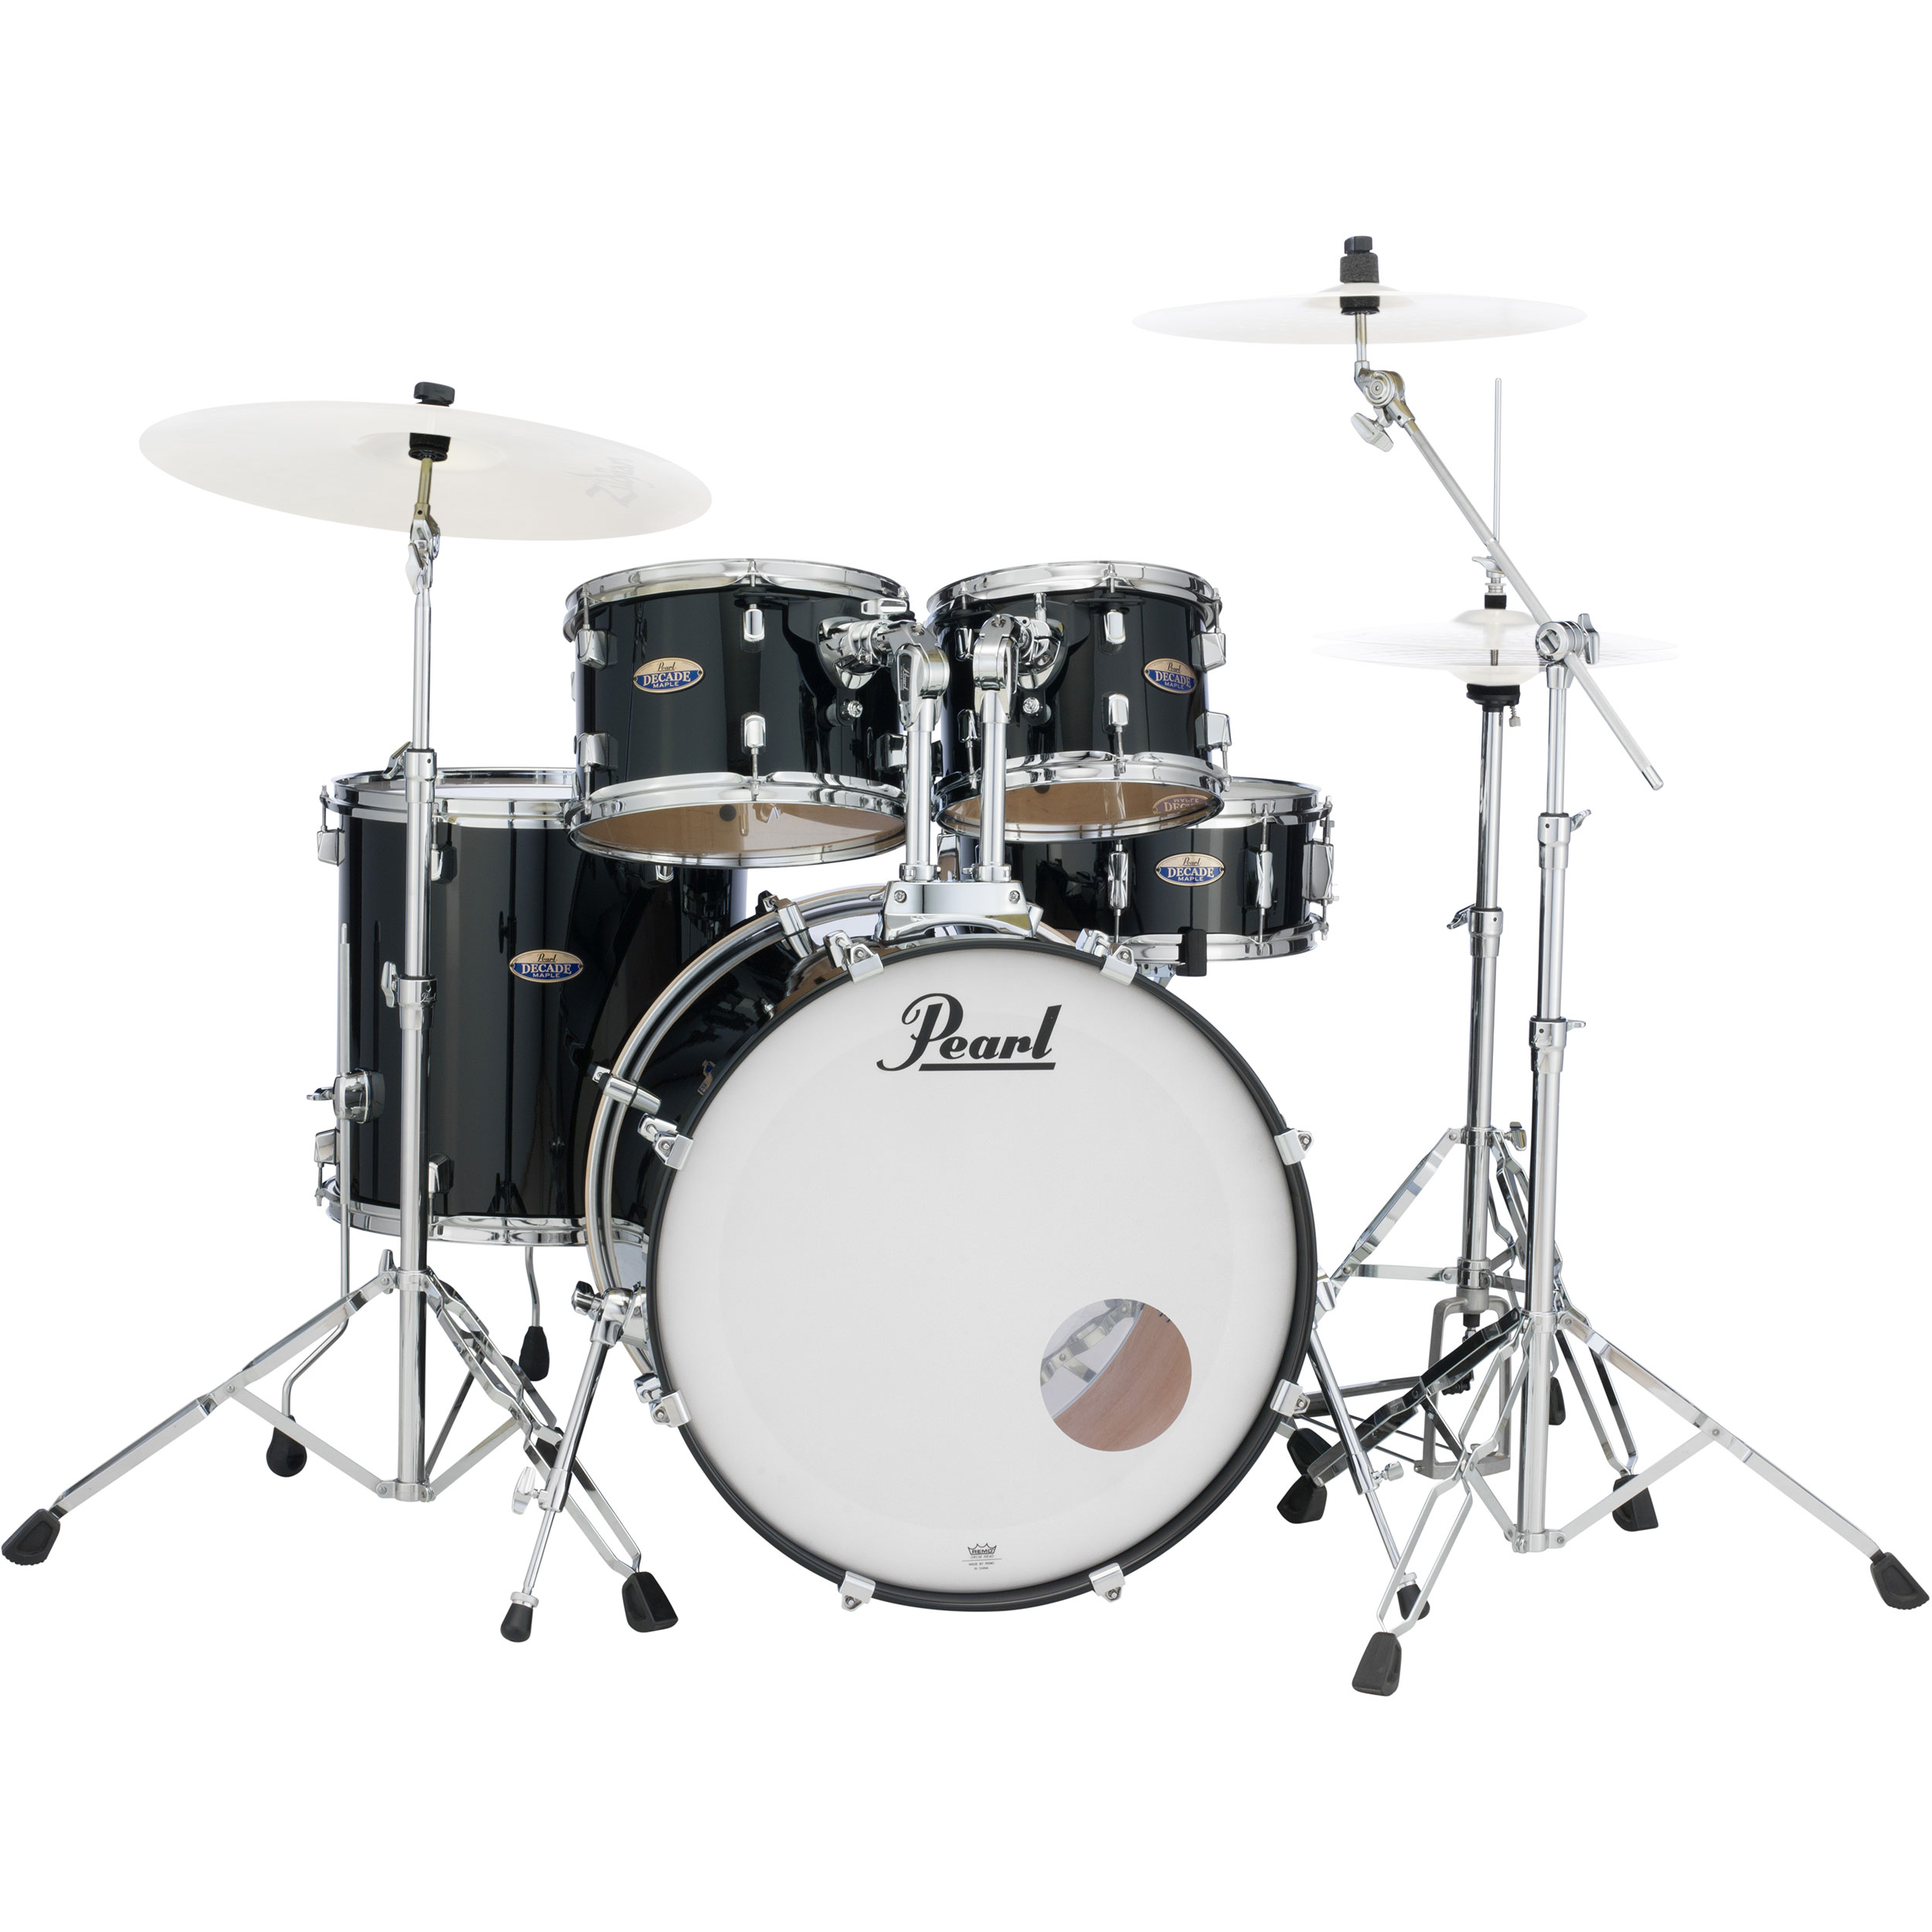 "Pearl Decade Maple 5-Piece Drum Set with 830 Series Hardware (22"" Bass, 10/12/16"" Toms, 14"" Snare) in Black Ice"